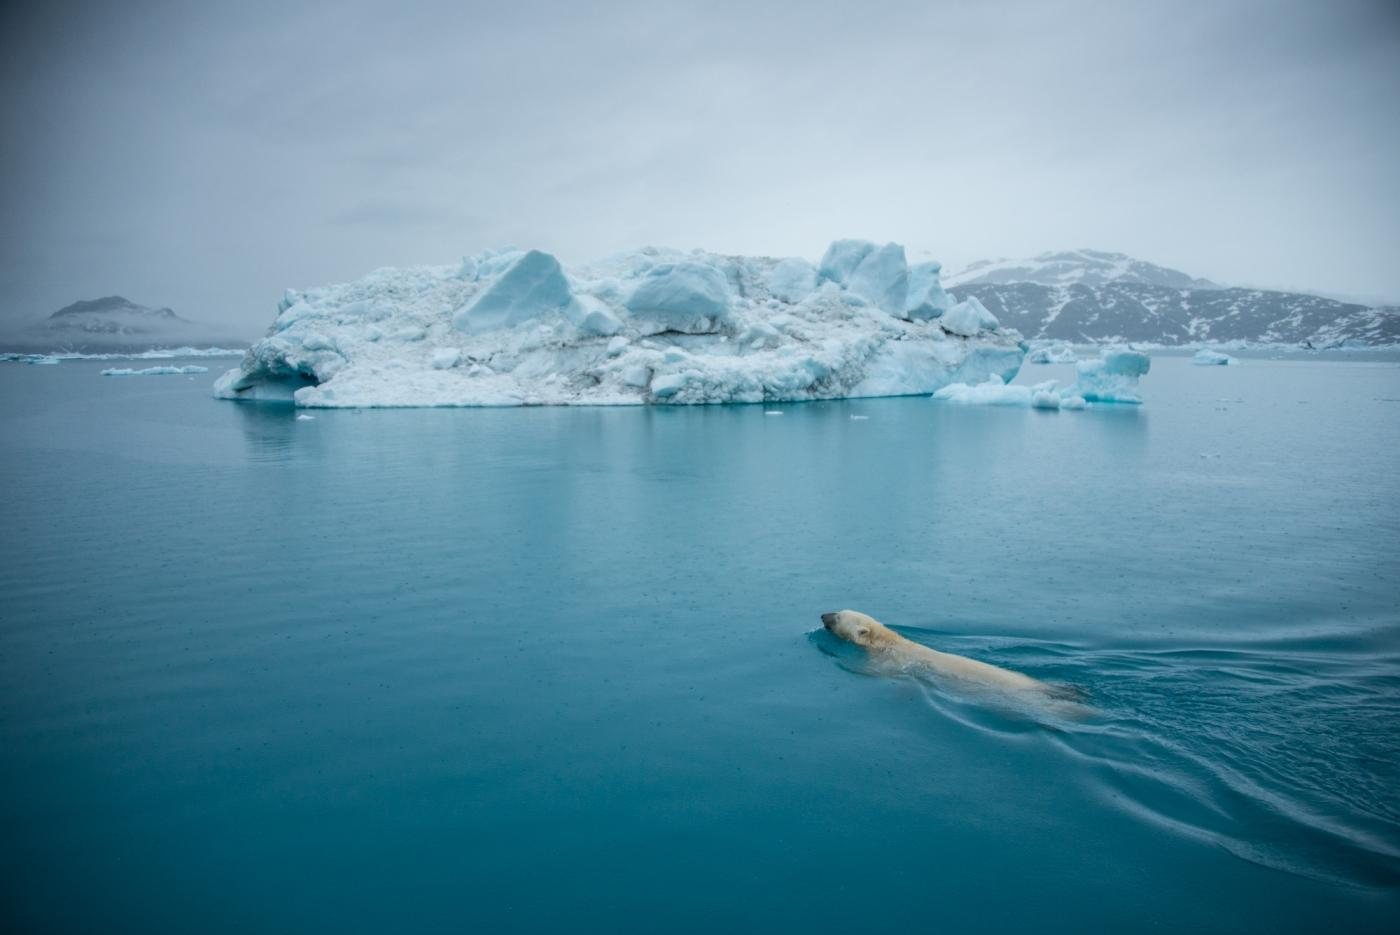 Polar bear swims in waters of Greenland. Photo by Andy Mann